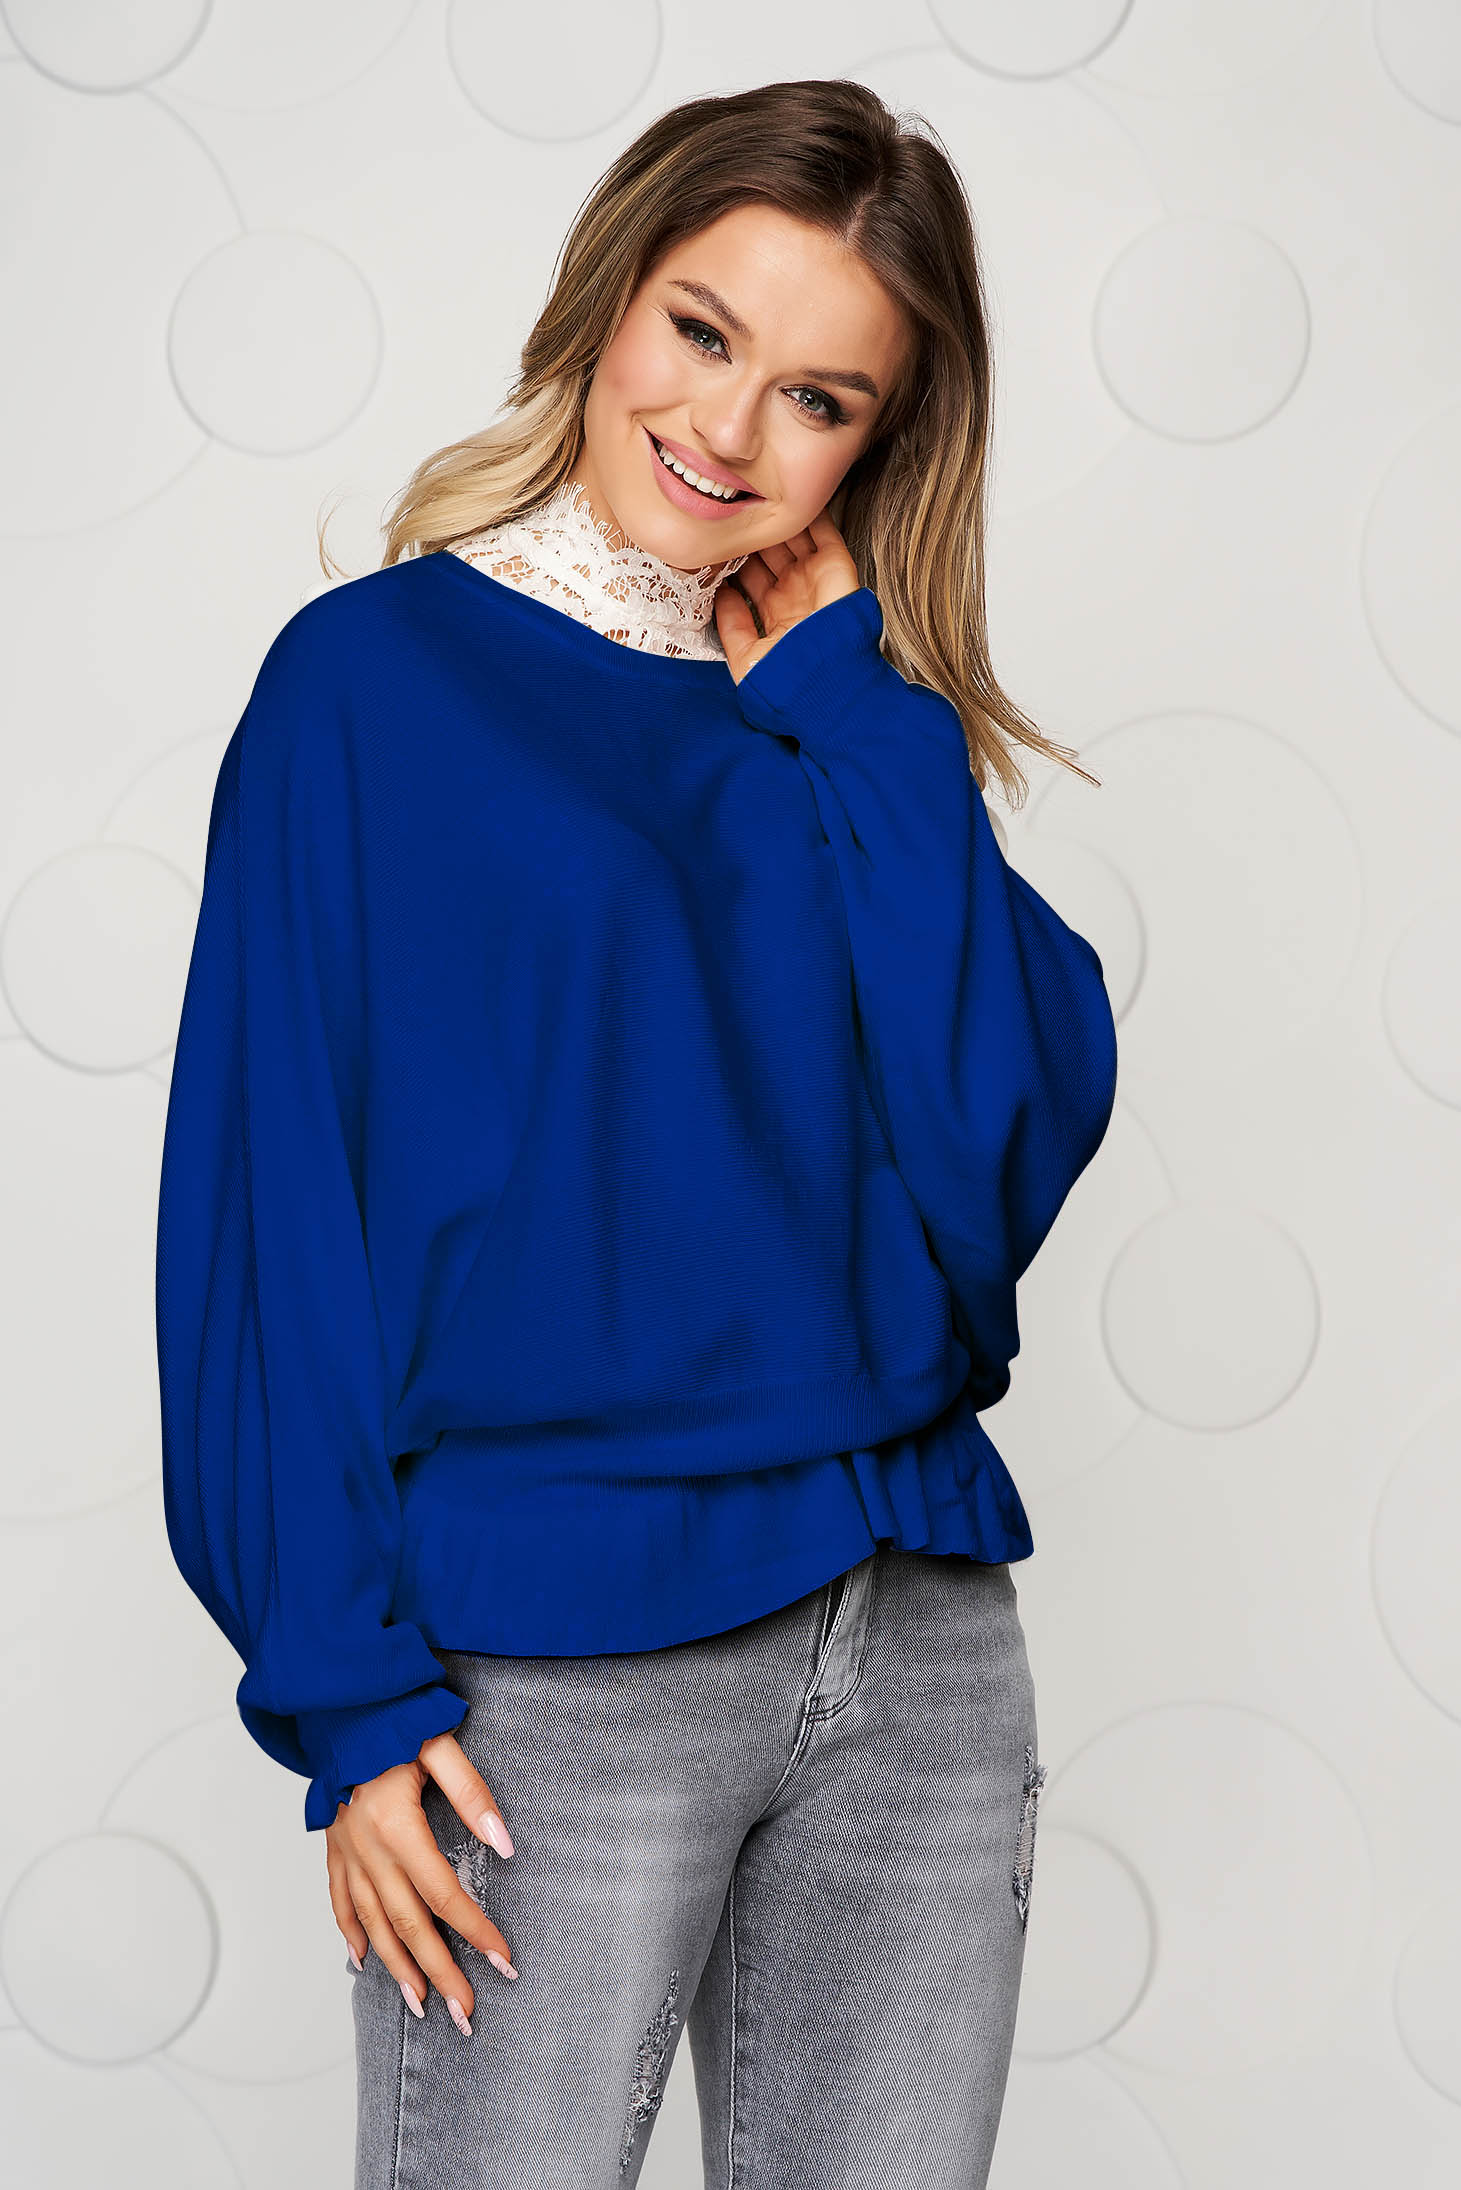 Blue women`s blouse casual knitted from elastic and fine fabric from striped fabric with ruffle details